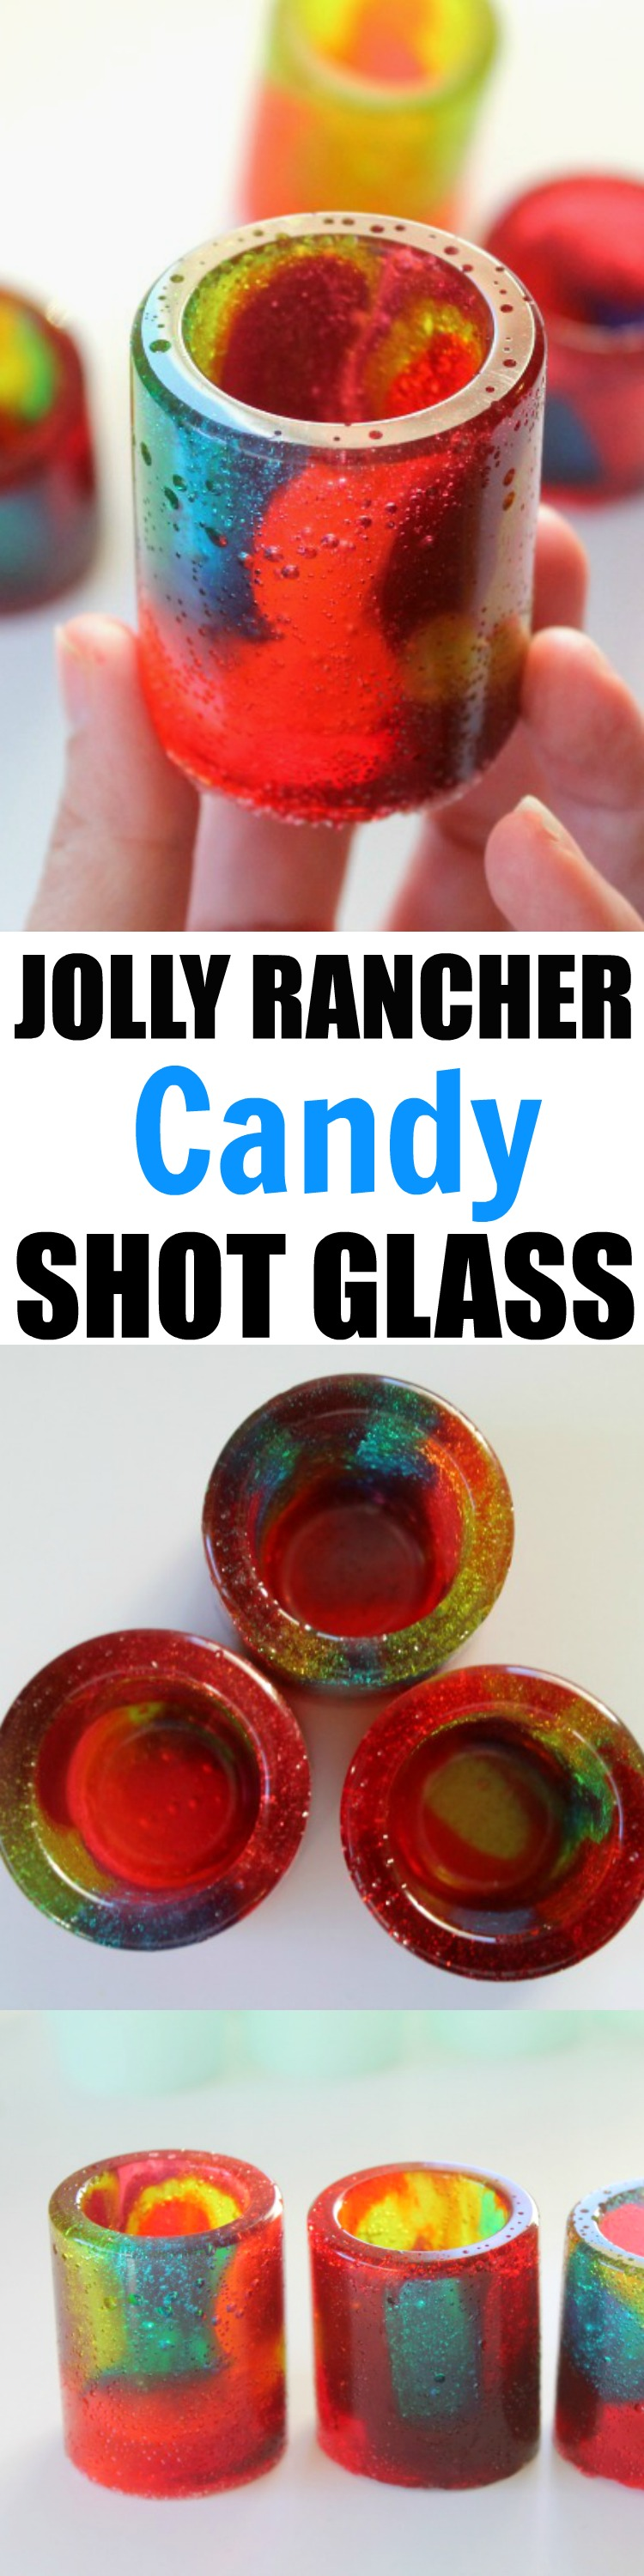 How To Make Your Own Jolly Rancher Shot Glass from home! It's so fun and easy to make these candy shot glasses. They are perfect for parties, holidays or just for fun.